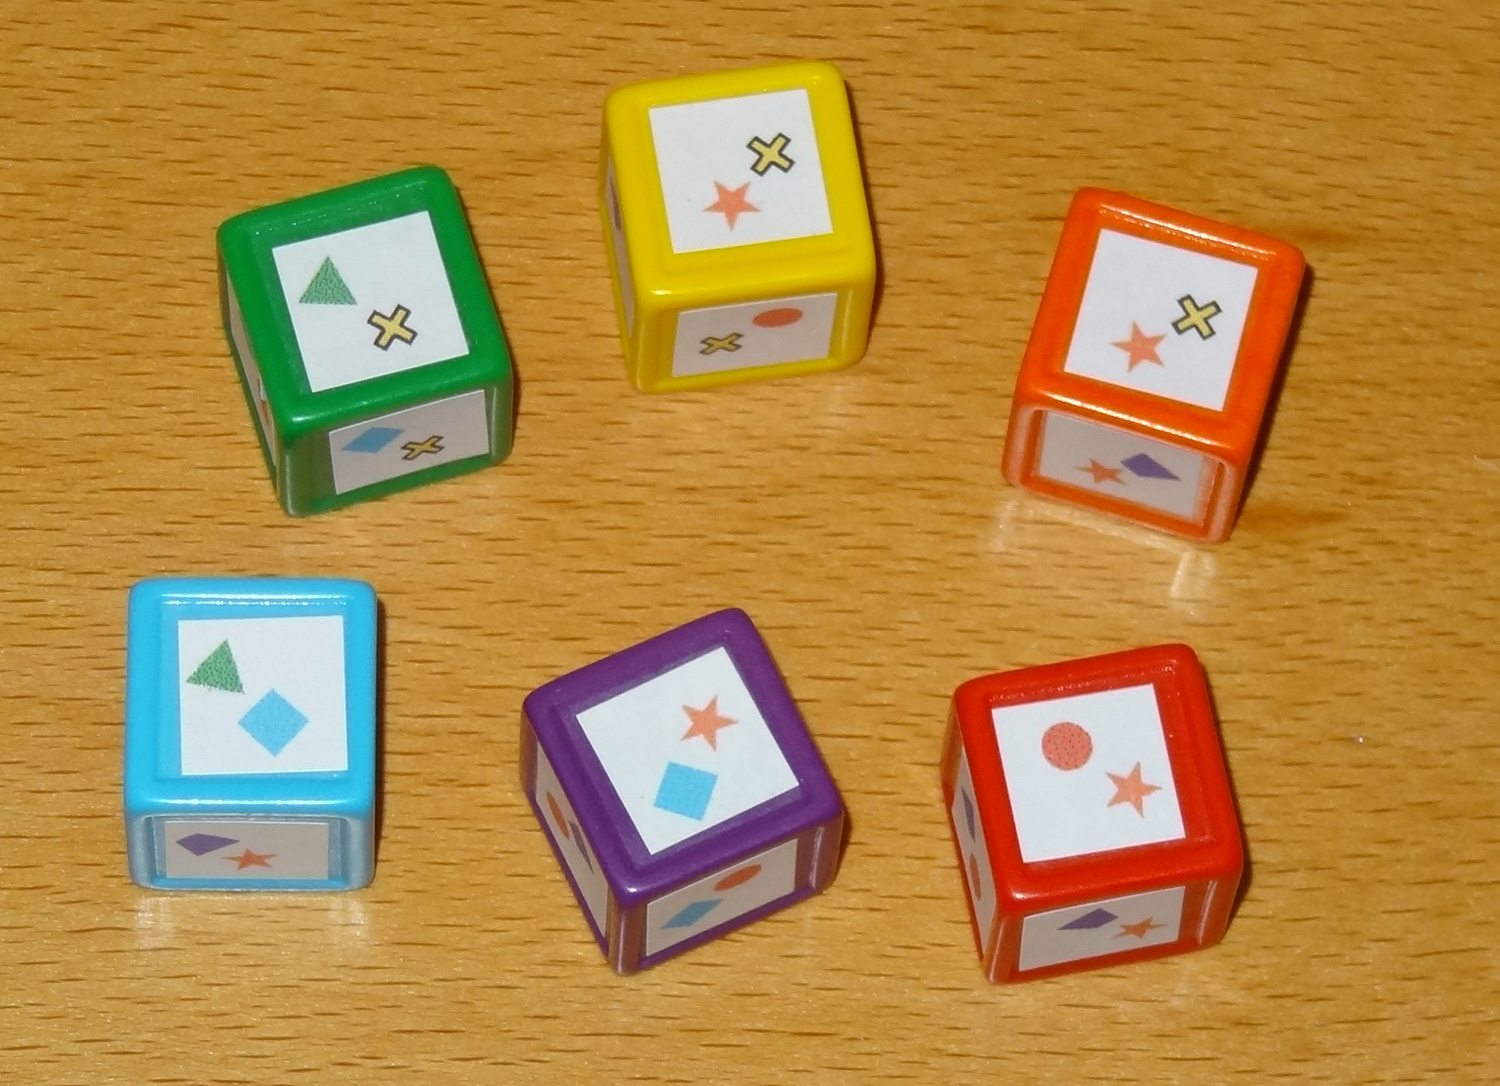 Chroma Cubes dice